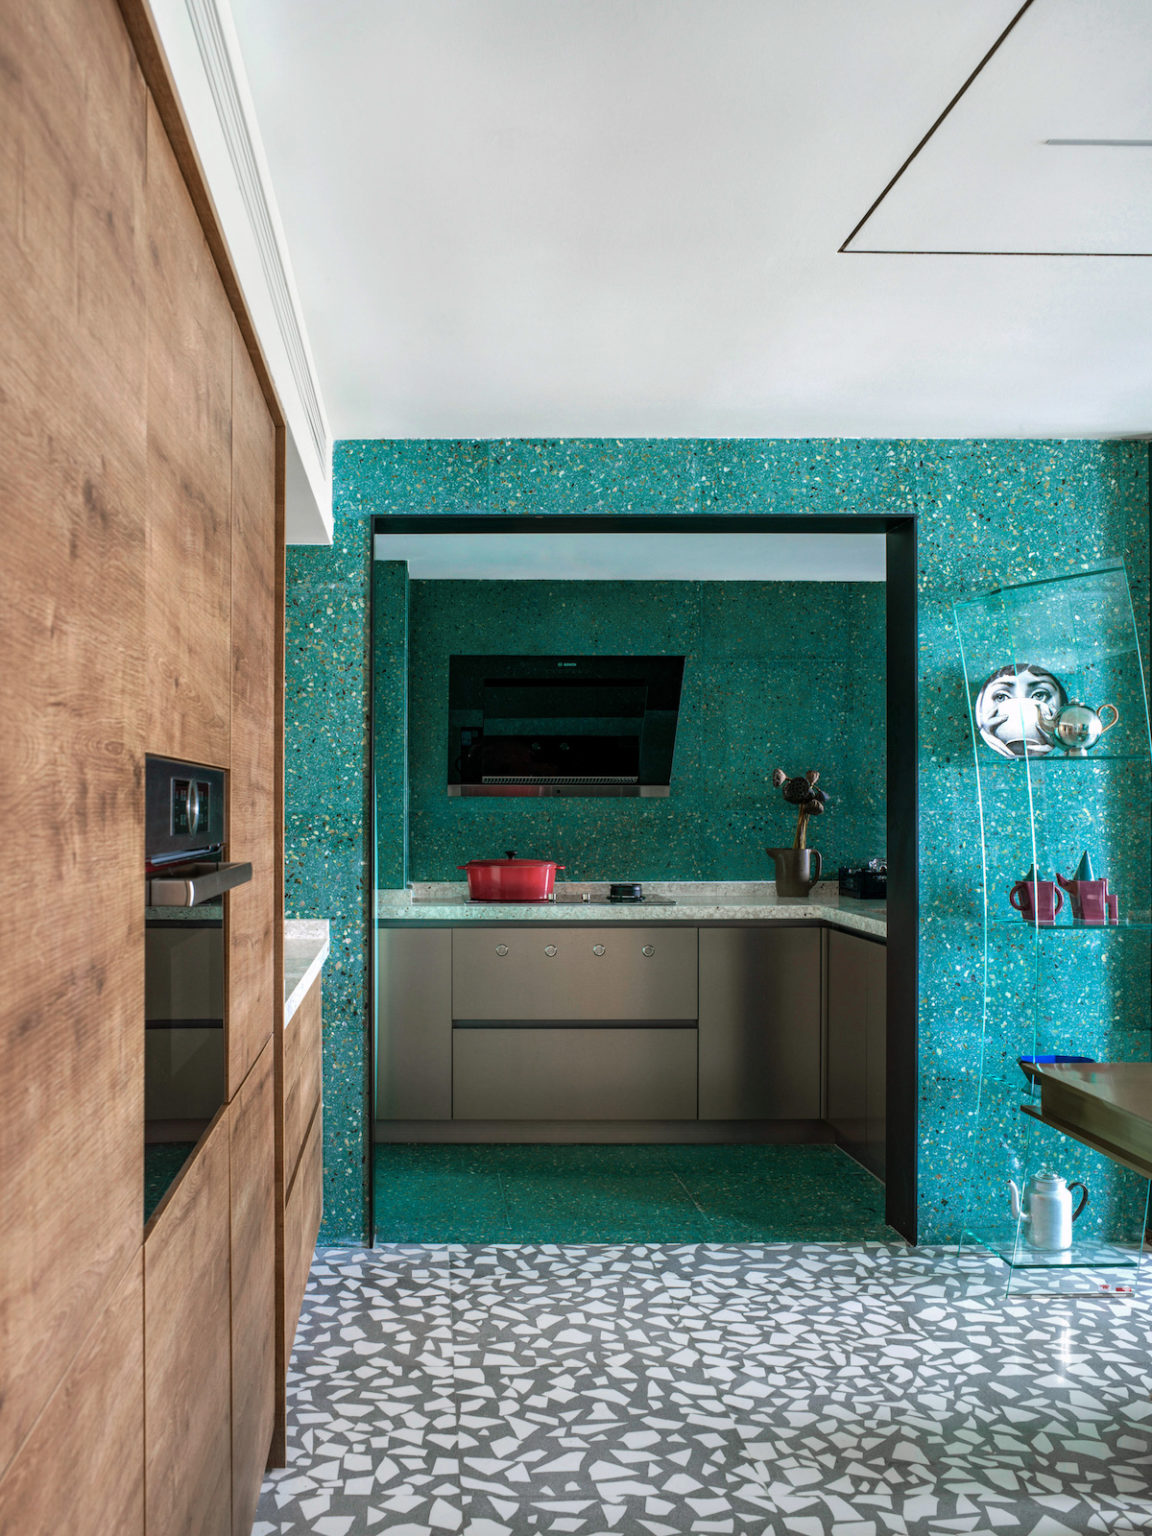 The cooking zone is pretty small, with a TV and simple grey cabinets with terrazzo countertops